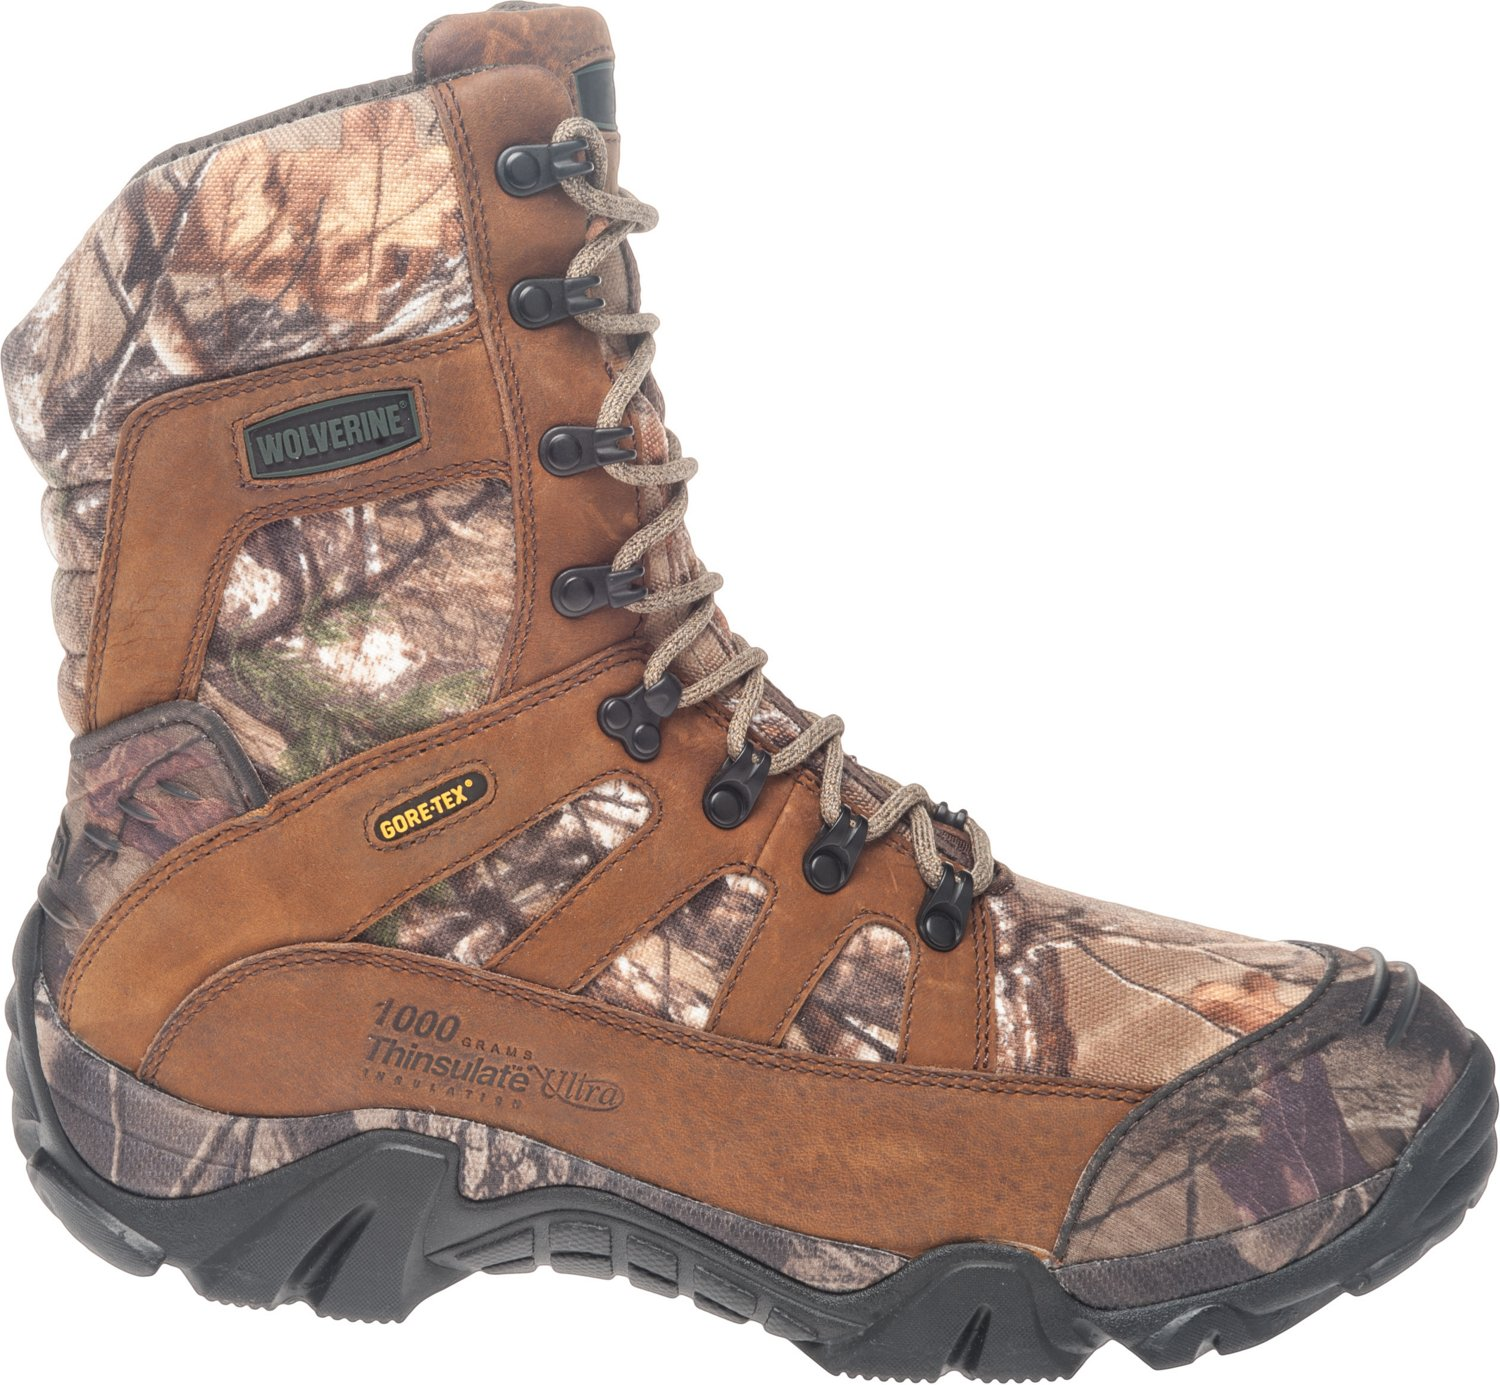 bc2195cfa5f Display product reviews for Wolverine Men's Ridgeline Extreme Hunting Boots